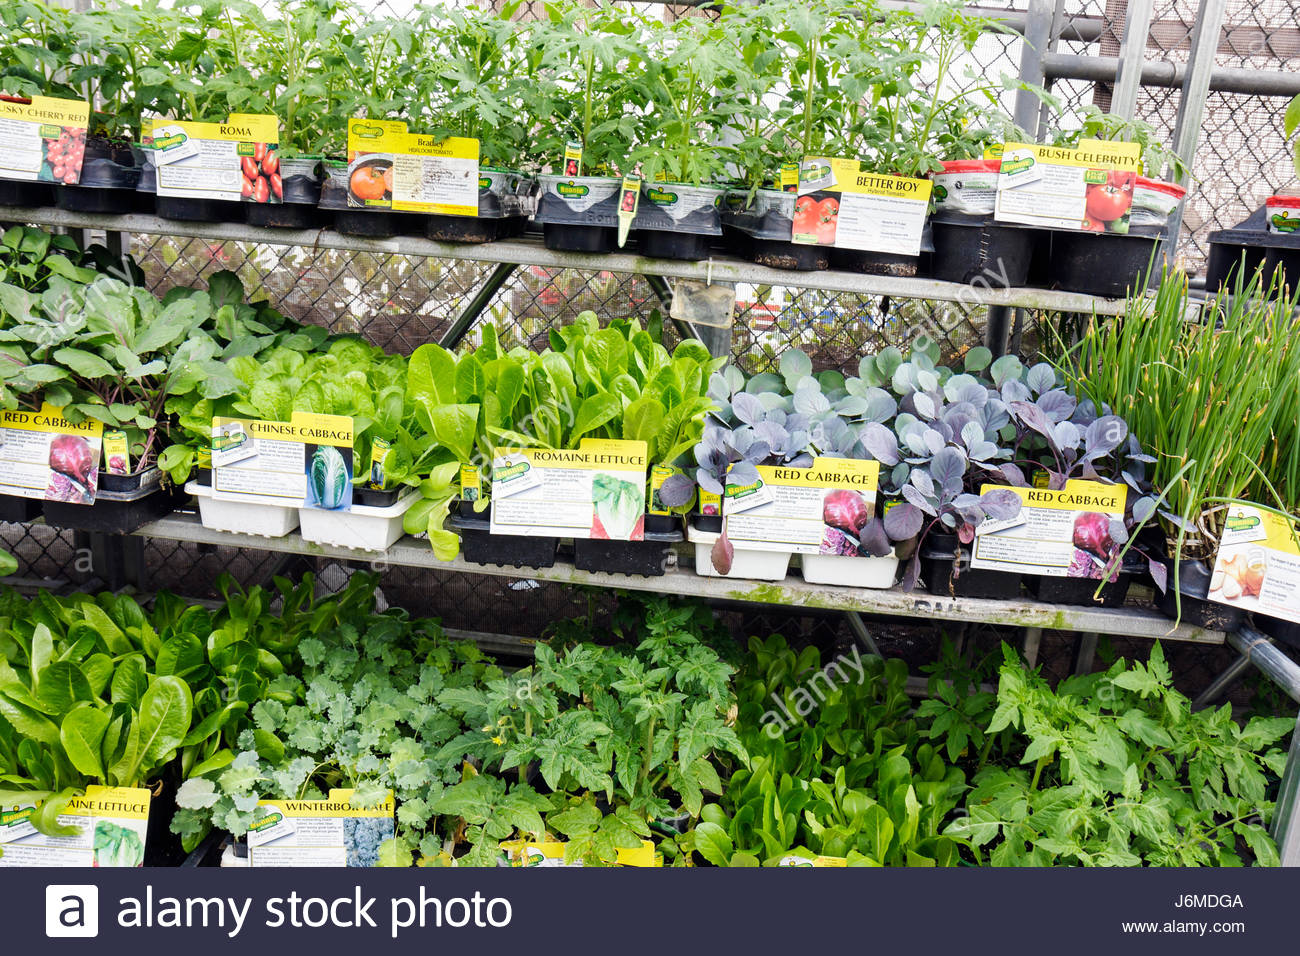 Great Miami Hialeah Florida Wal Mart Walmart Shopping Garden Center Plants For  Sale Amazing Design